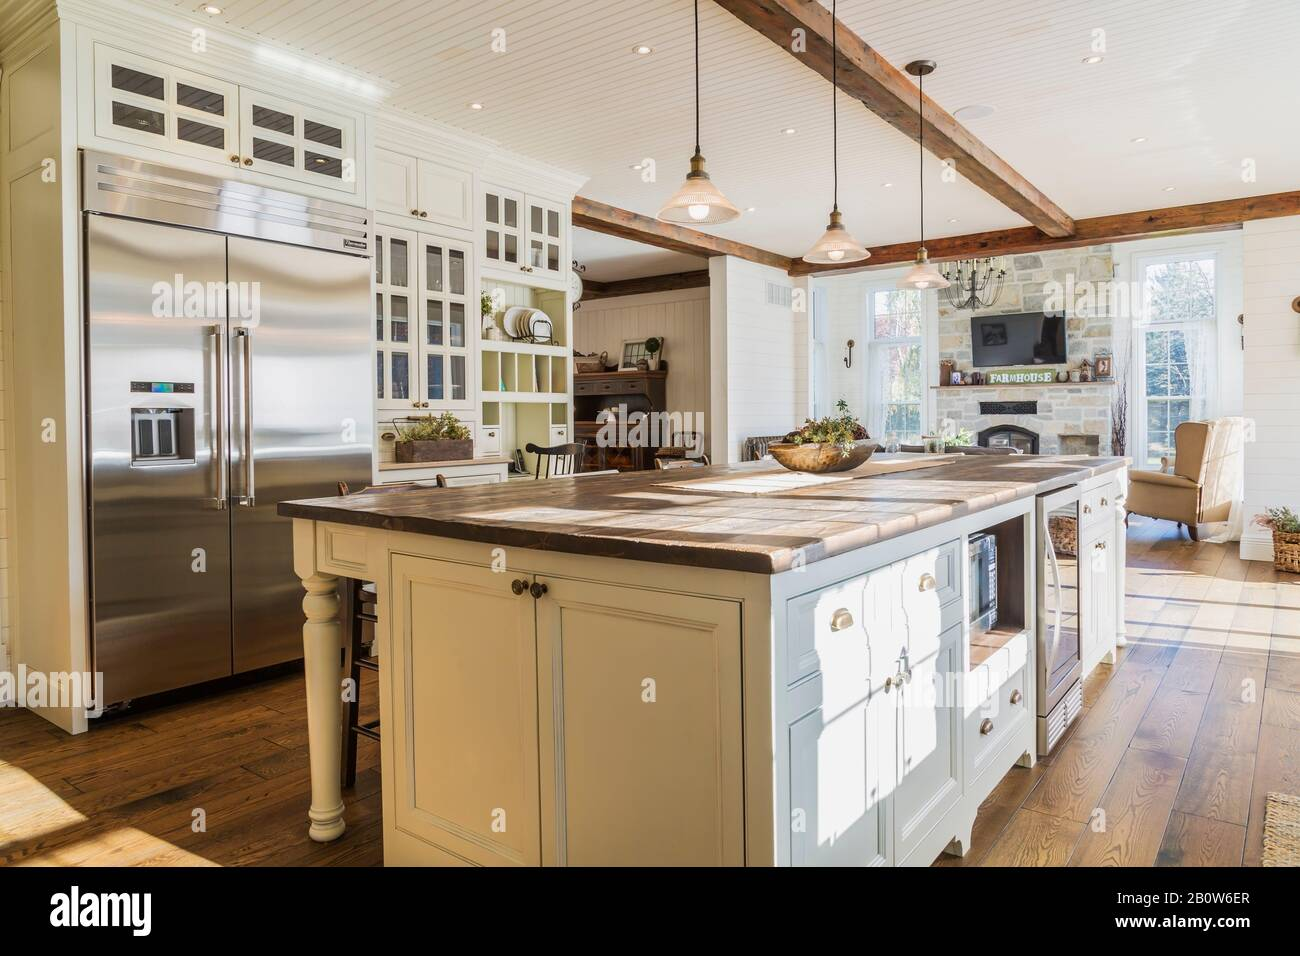 Interior View Of Country Style Open Plan Kitchen With Kitchen